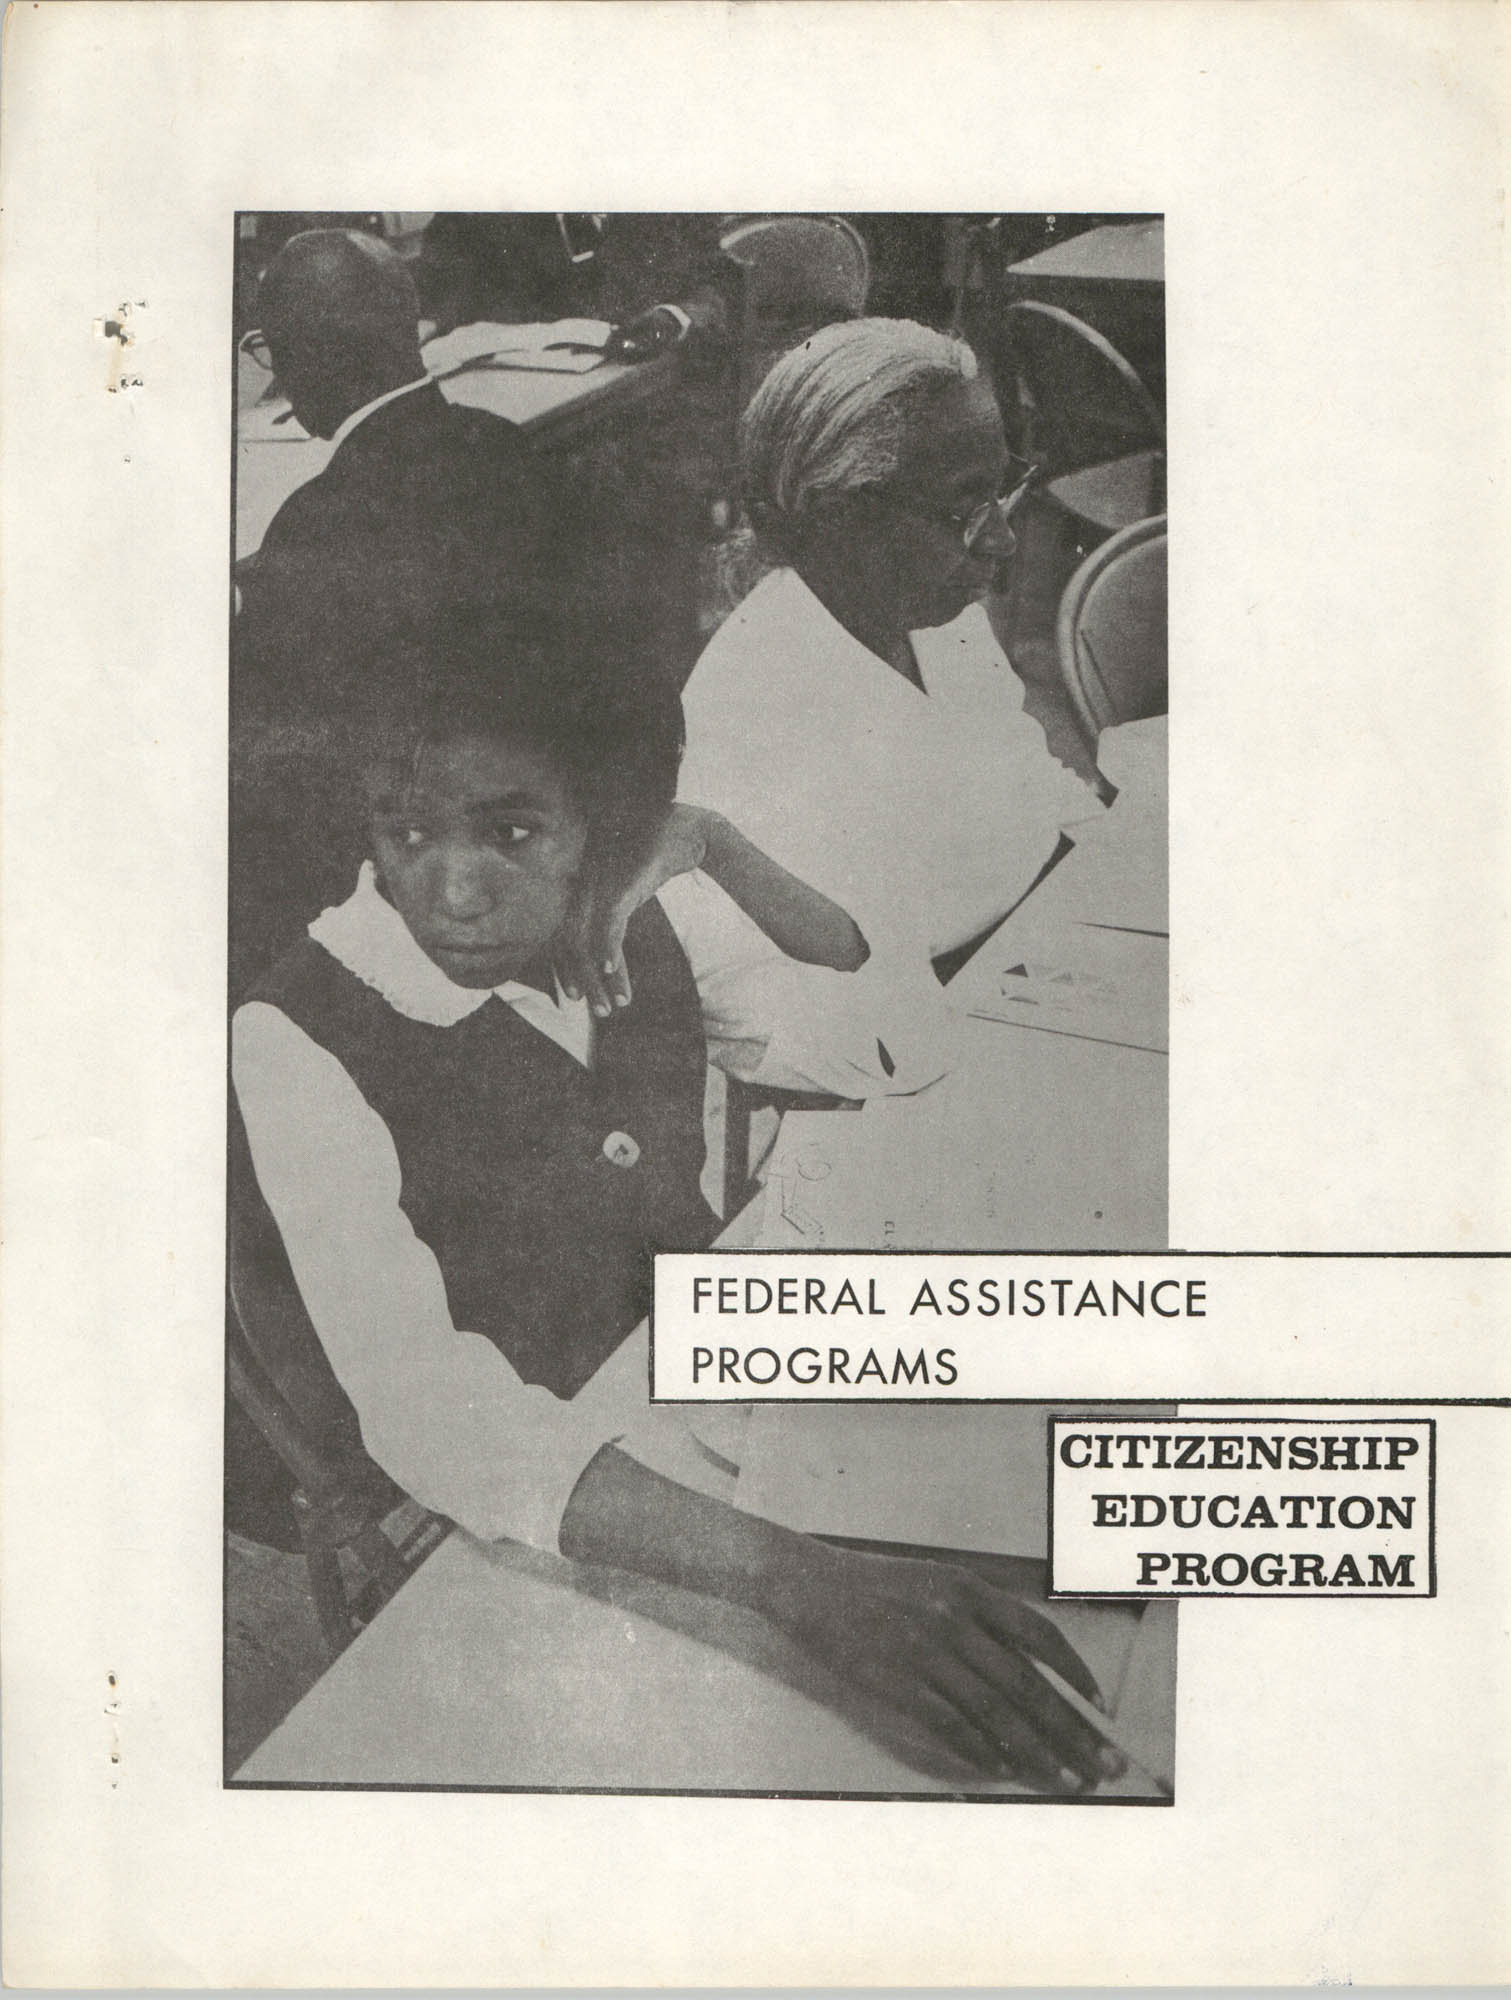 Federal Assistance Programs